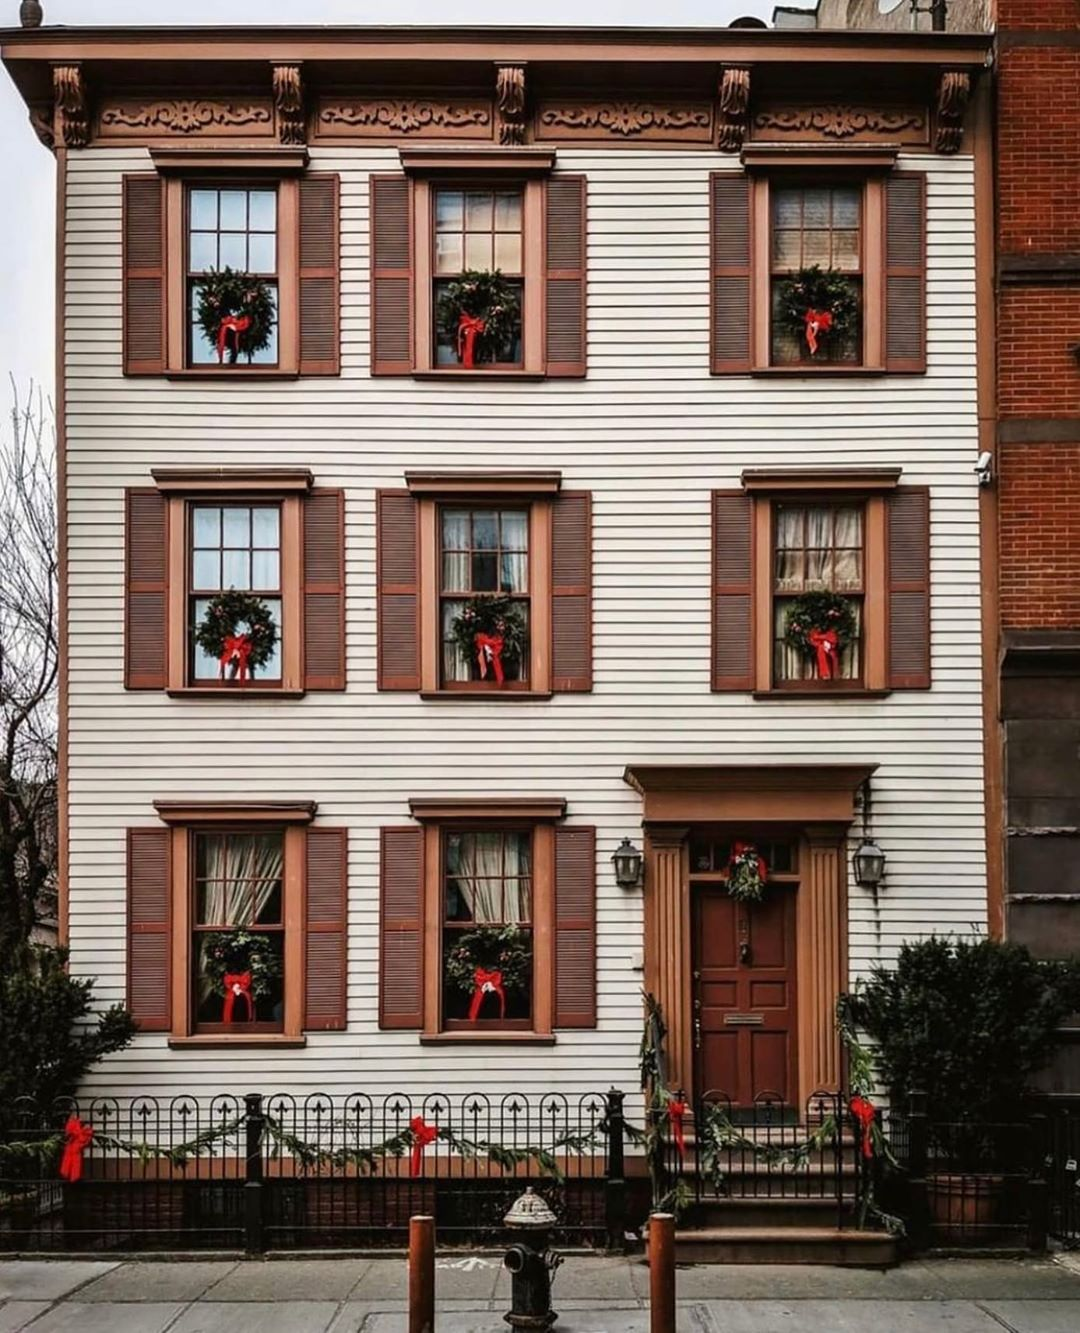 West Village holiday house magic ✨ via @curbed